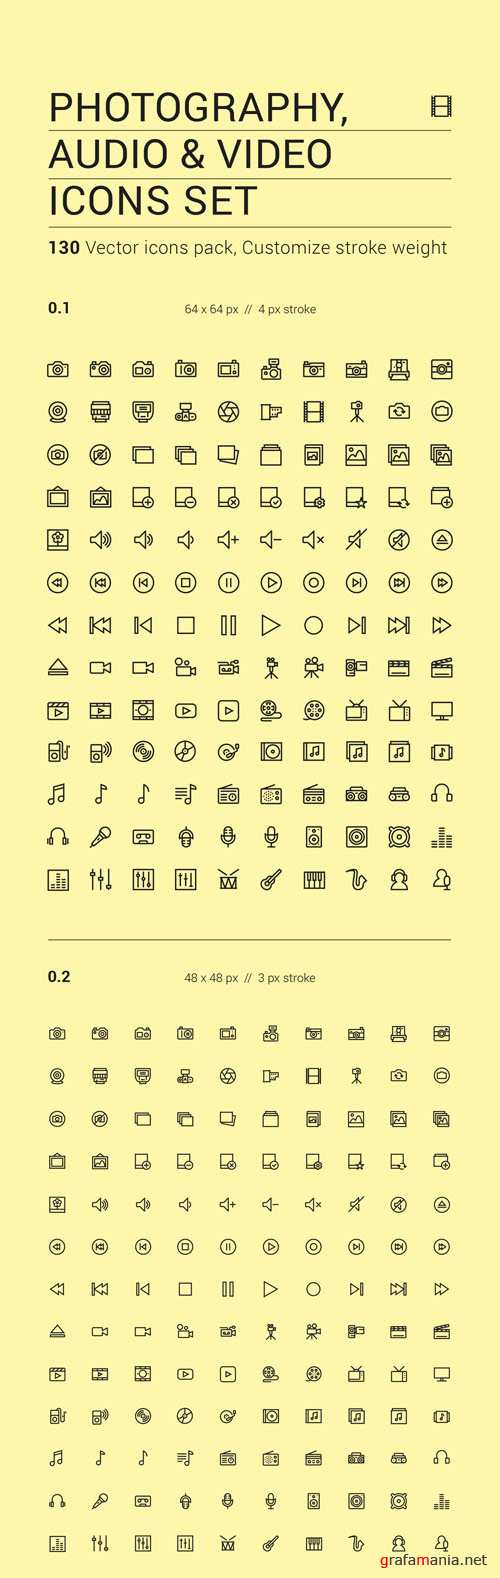 The Icons Vector Set - Media